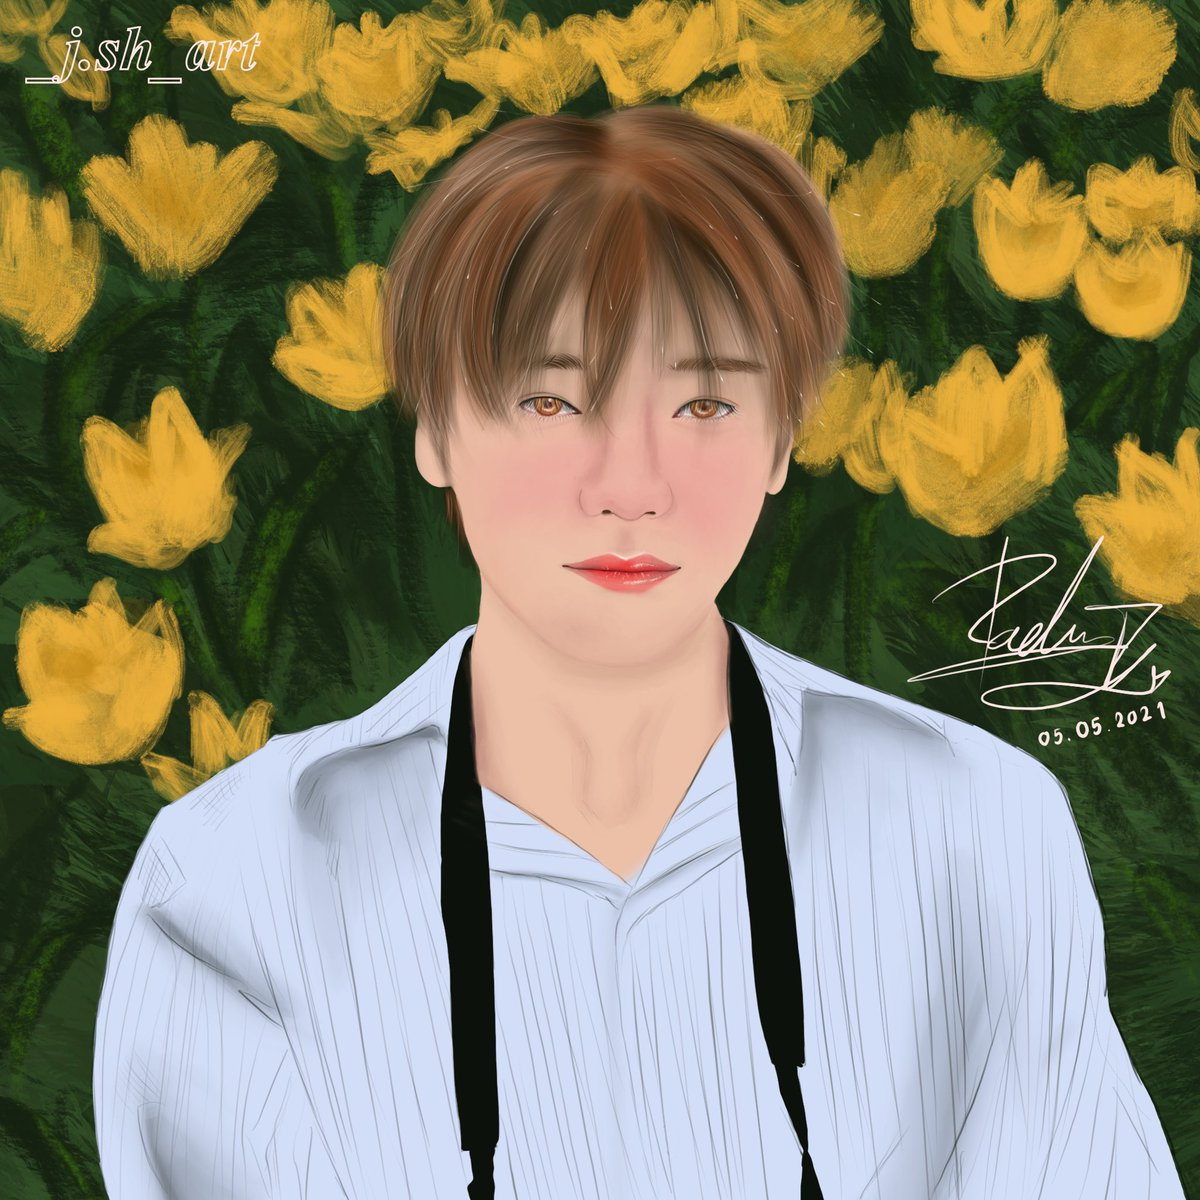 RT @Tybubu00_: 🌷📷 TY   #TAEYONG #FANARTnct #태용 #FANART #แทยง   #JY_BB_Art https://t.co/sWtdG1Hg1I